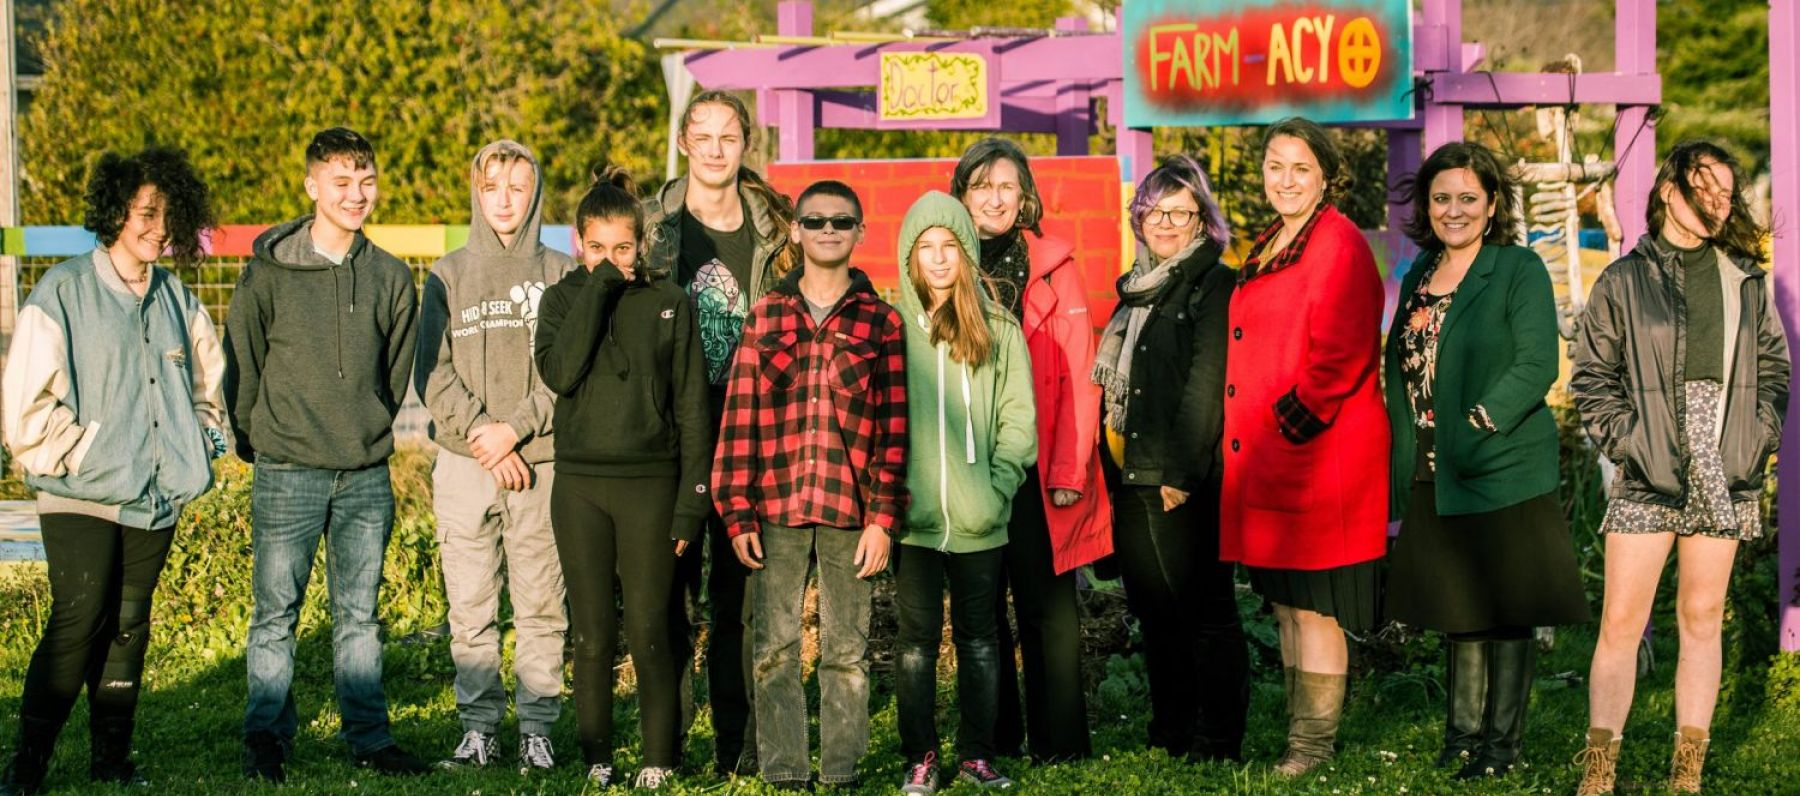 ThinkPlace designers are using empathy to help transform outcomes in Del Norte California